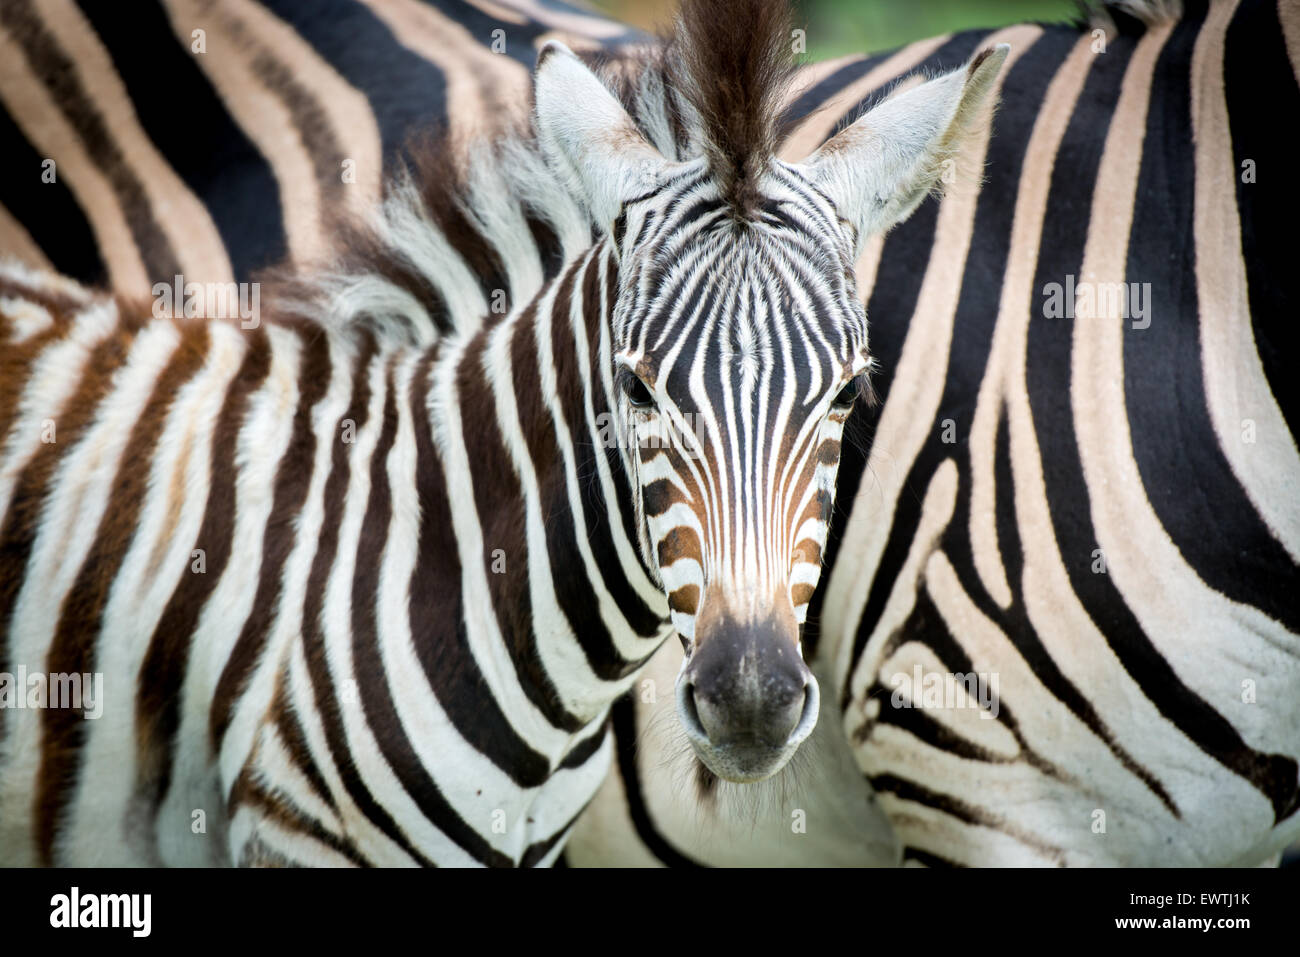 SOUTH AFRICA- Zebra (Equus quagga) roaming in the Dinokeng Game Reserve - Stock Image